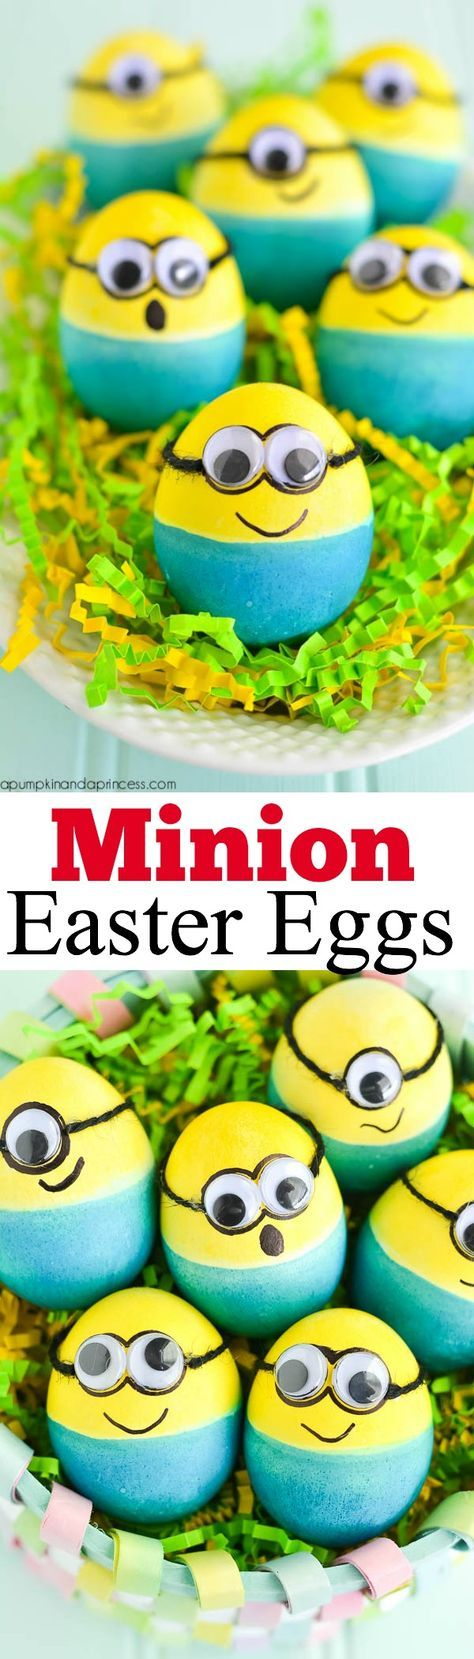 Dyed Minion Easter Eggs - how to make dyed Minions Easter eggs. Super cute Easter craft for kids!